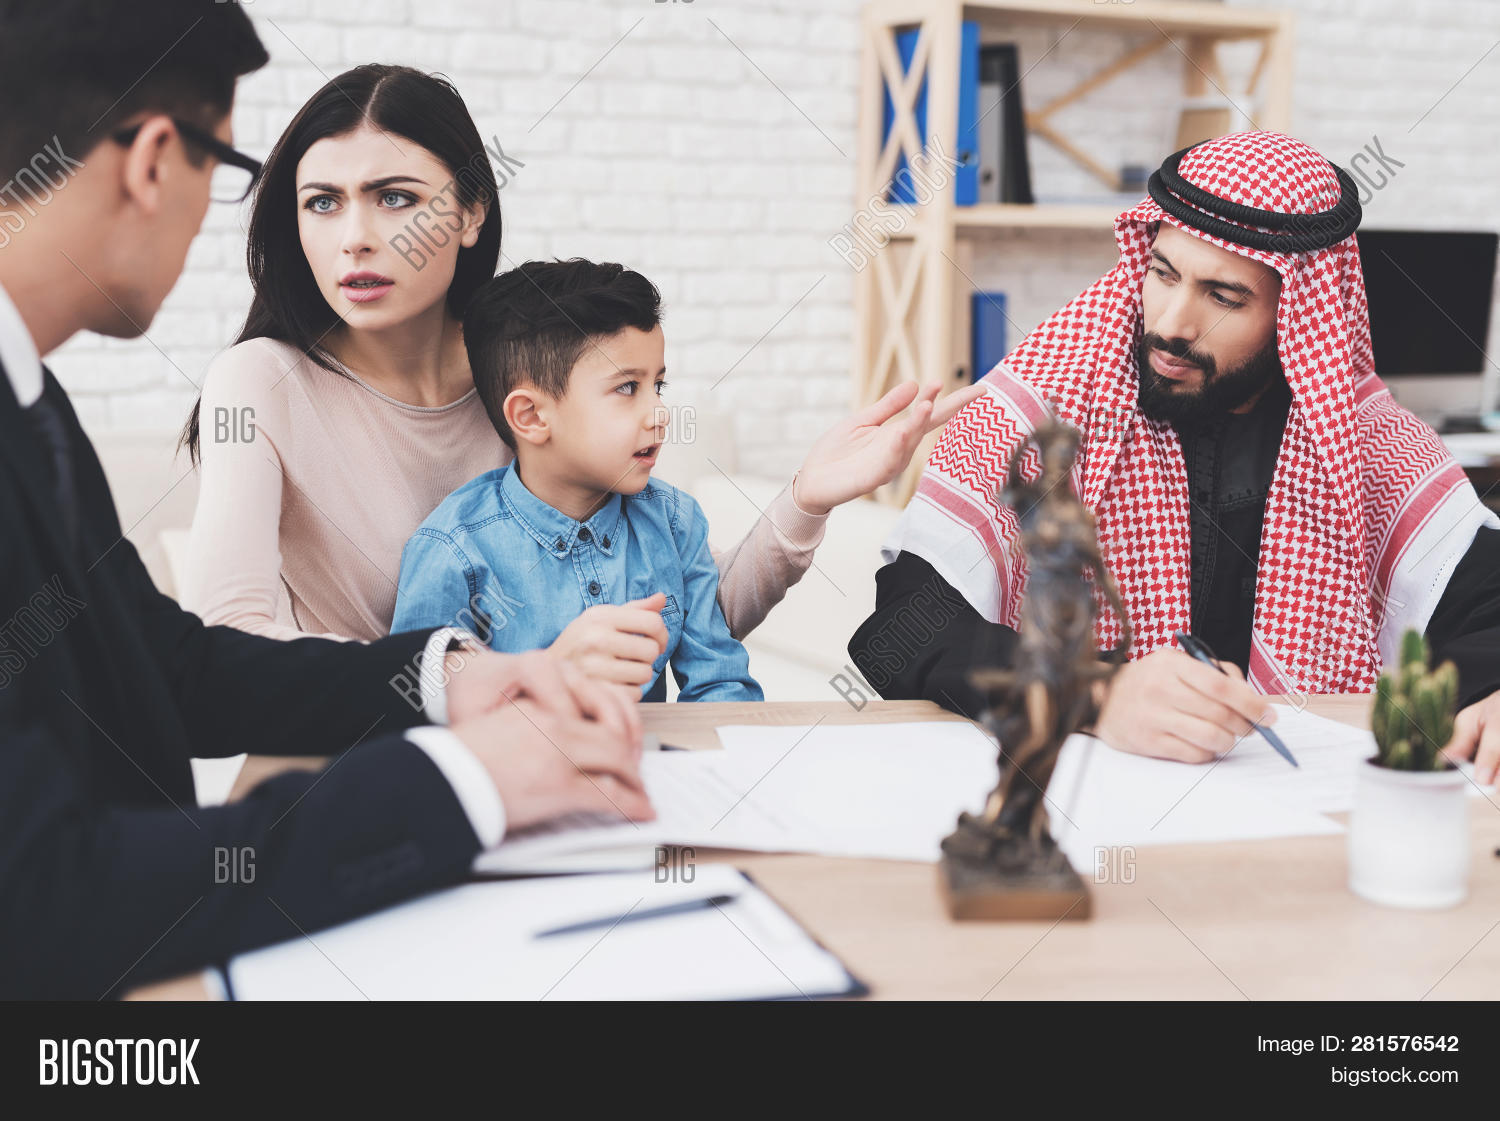 Family Lawyer Office  Image & Photo (Free Trial) | Bigstock